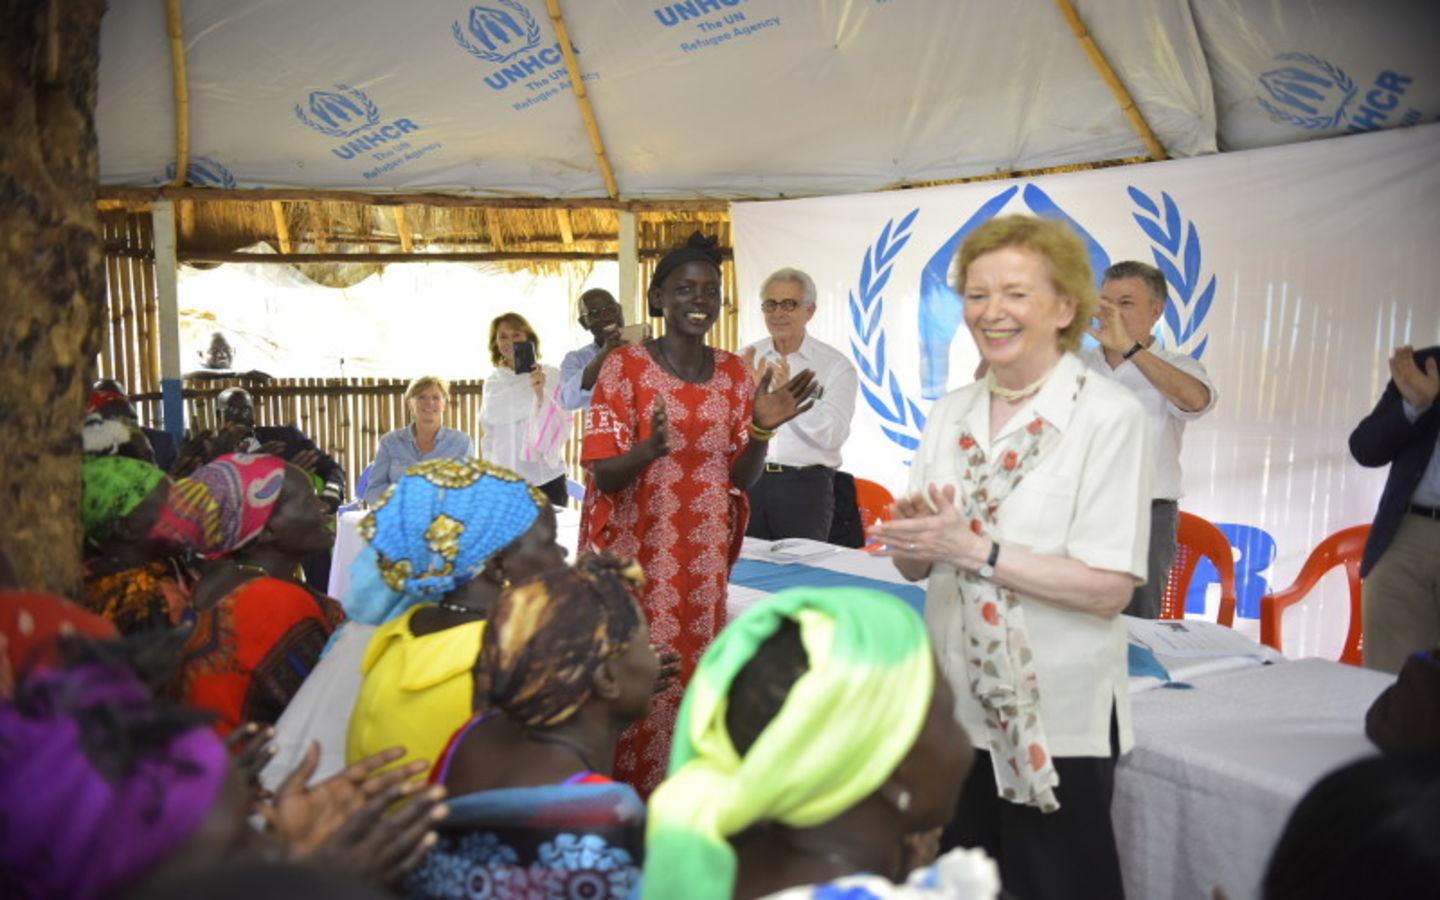 Mary Robinson with refugees in Ethiopia in UNHCR tent